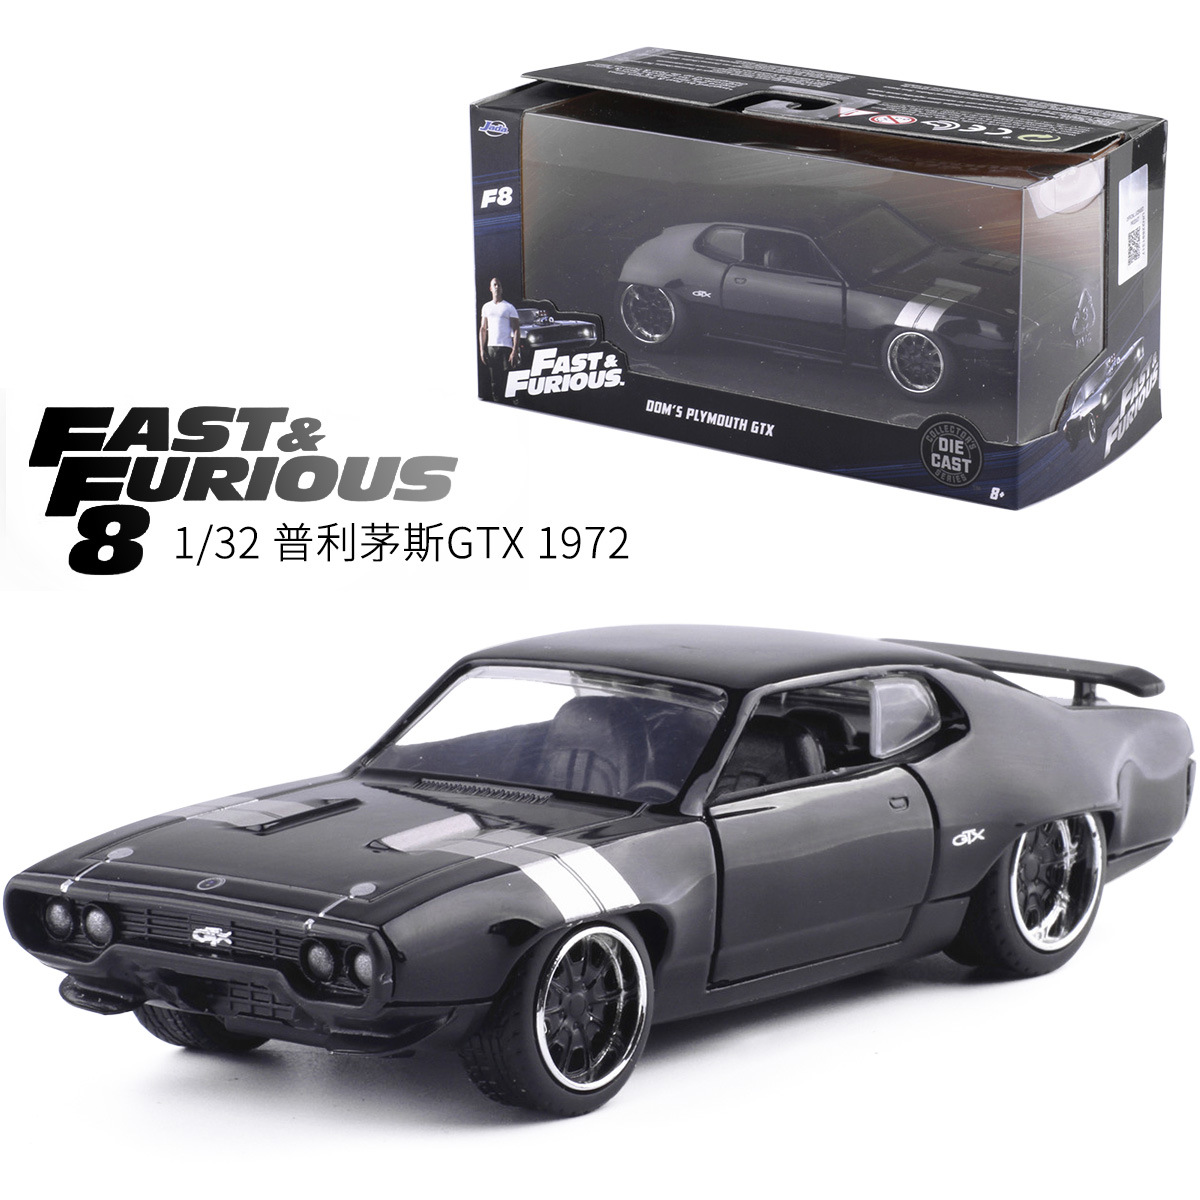 Jada1:32 Fast & Furious Alloy Car 1972 Plymouth GTX Metal Die cast Classical Street Race Model Toy Collection For Children Gifts